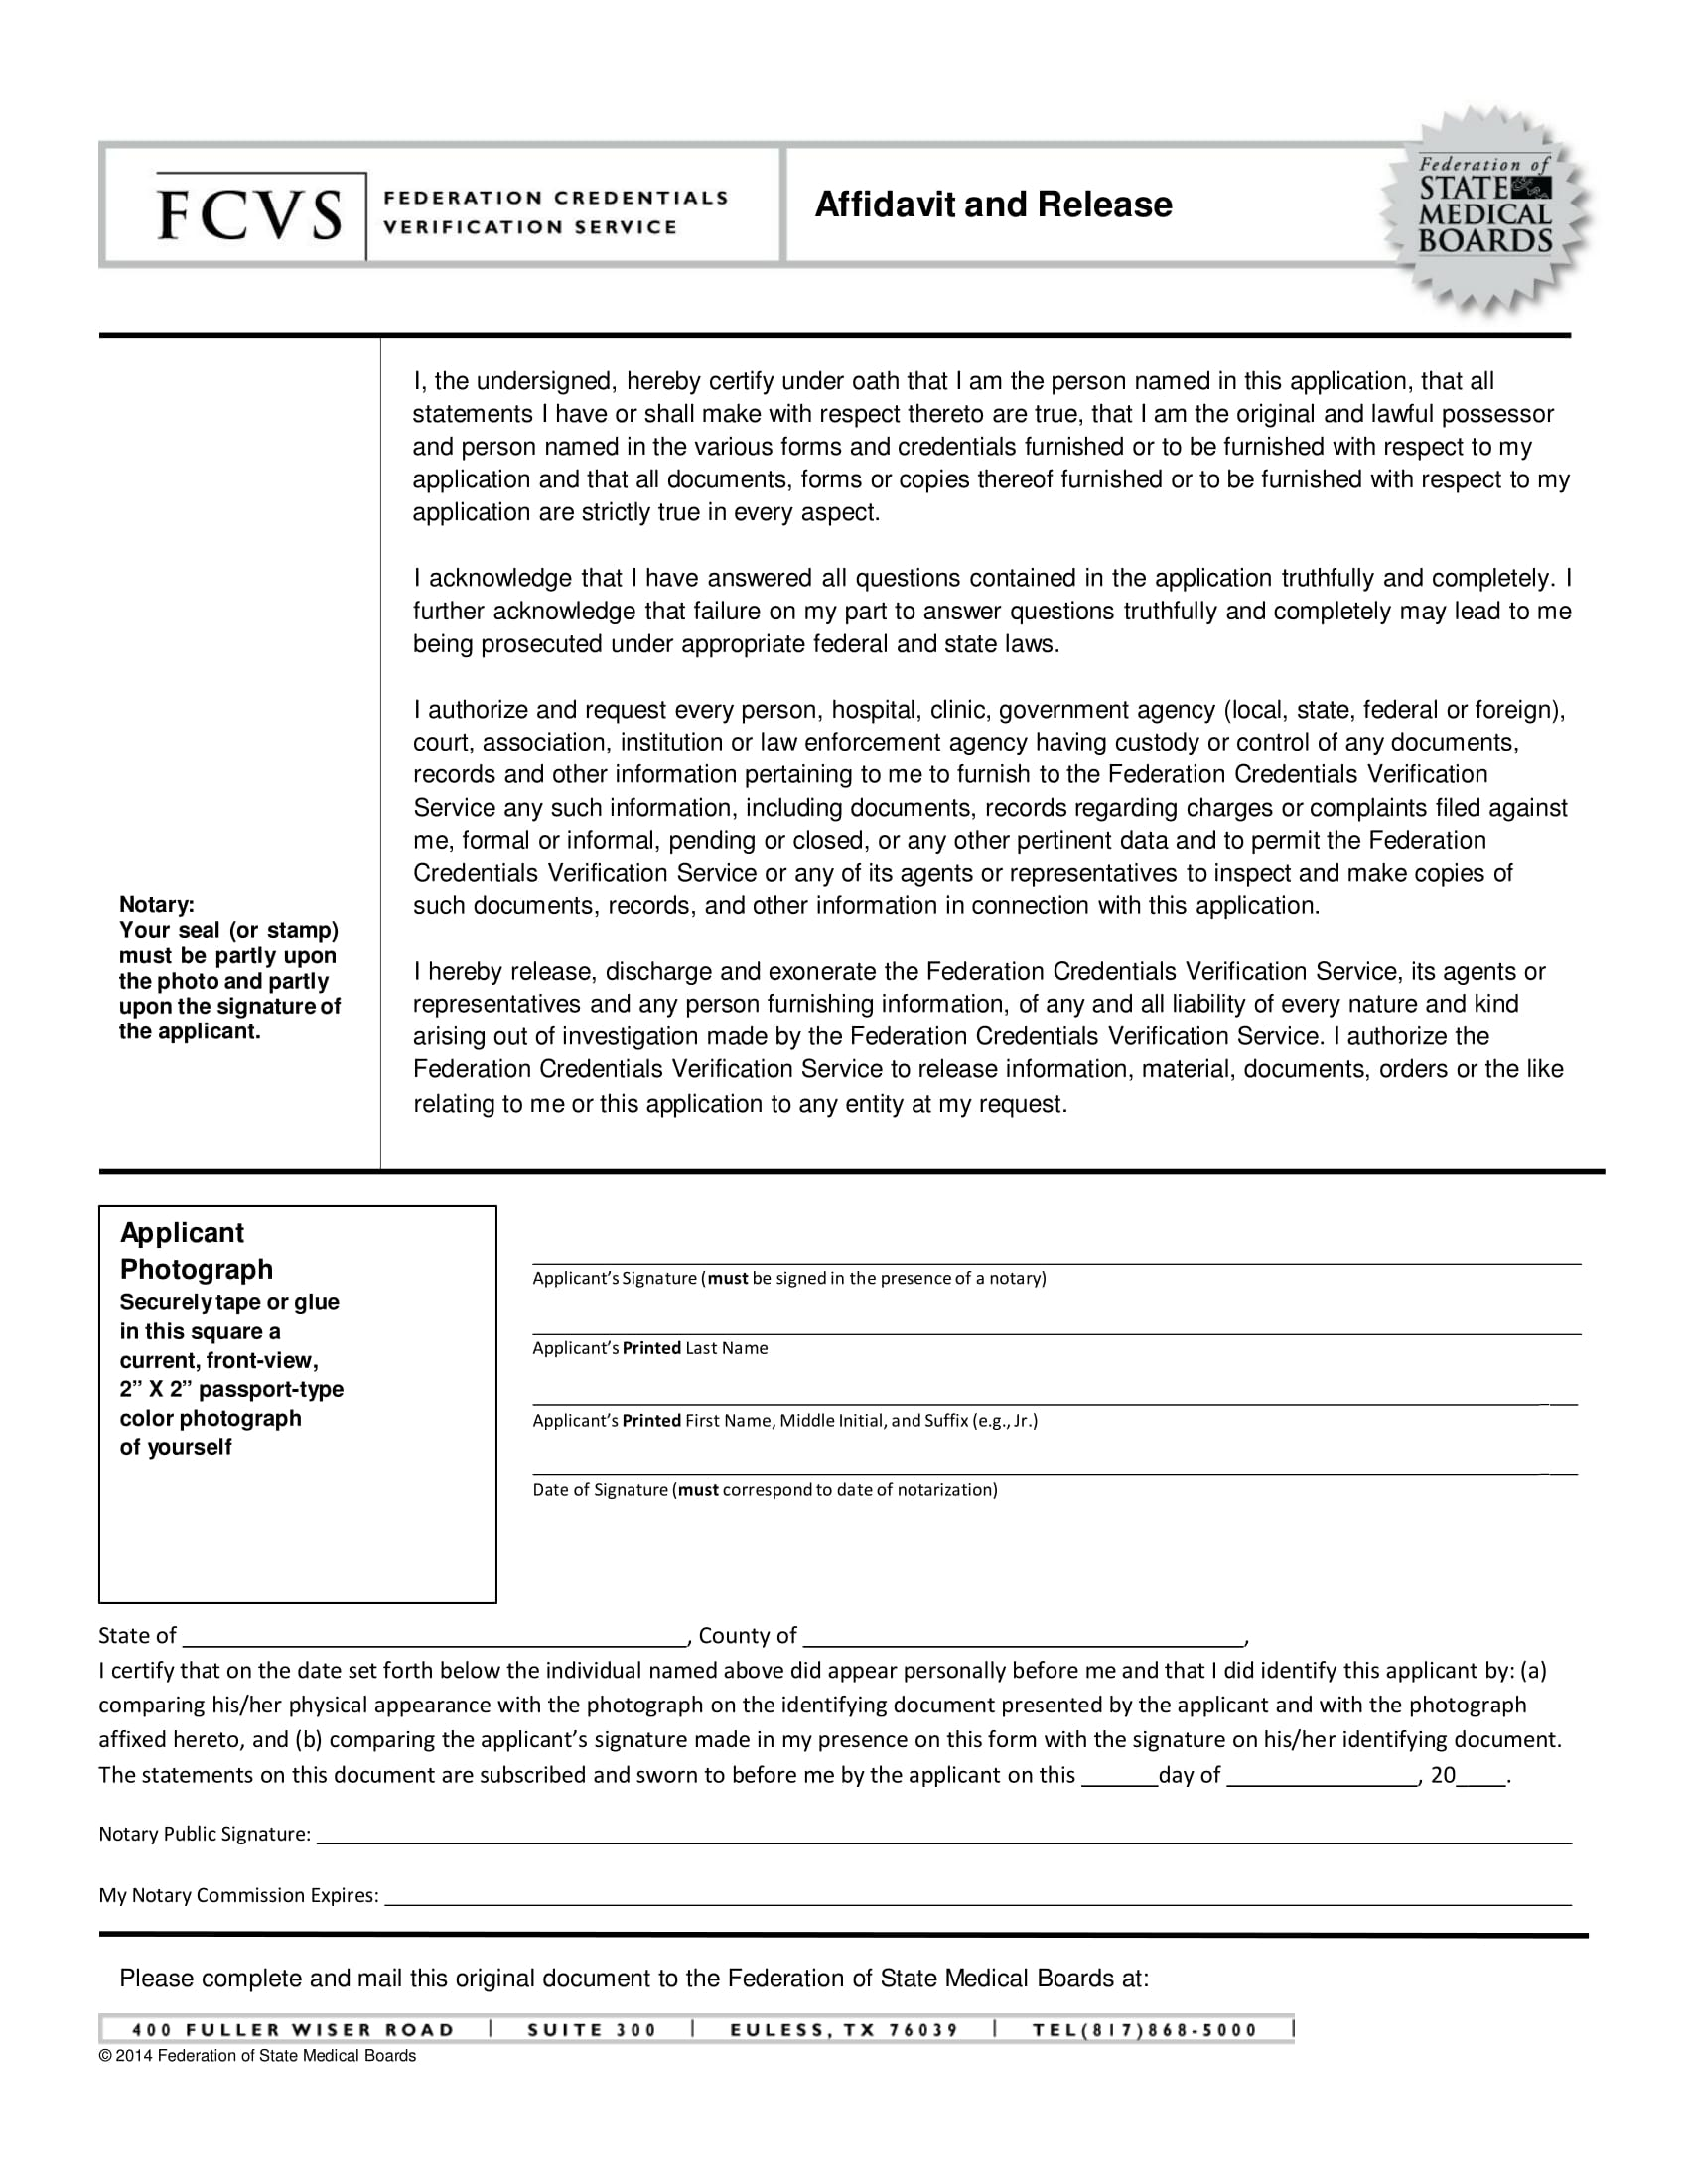 21 affidavit form sample formats affidavit and release sample format falaconquin